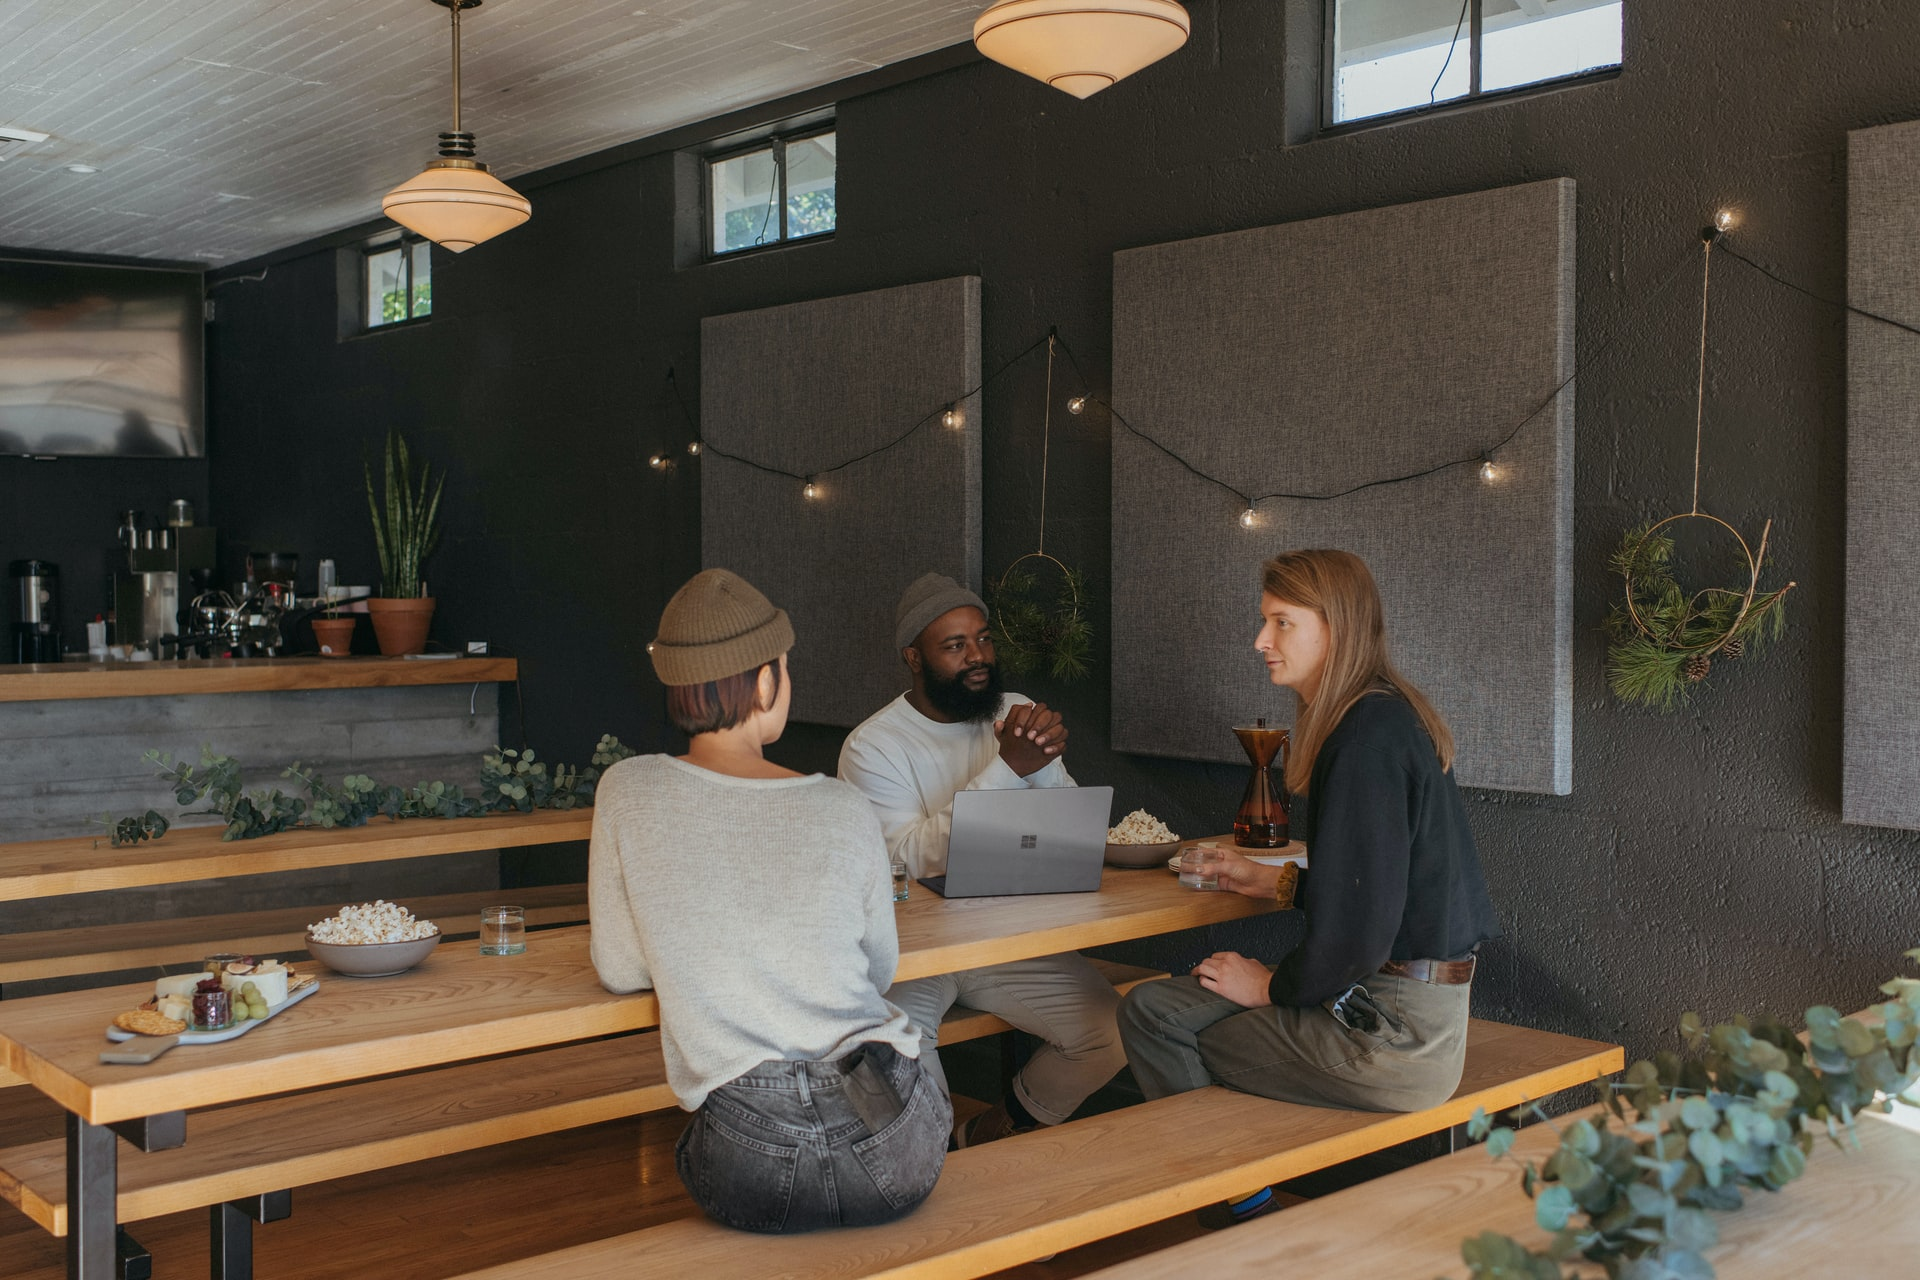 Coworking space colleagues chatting. Photo by @Surface via Unsplash